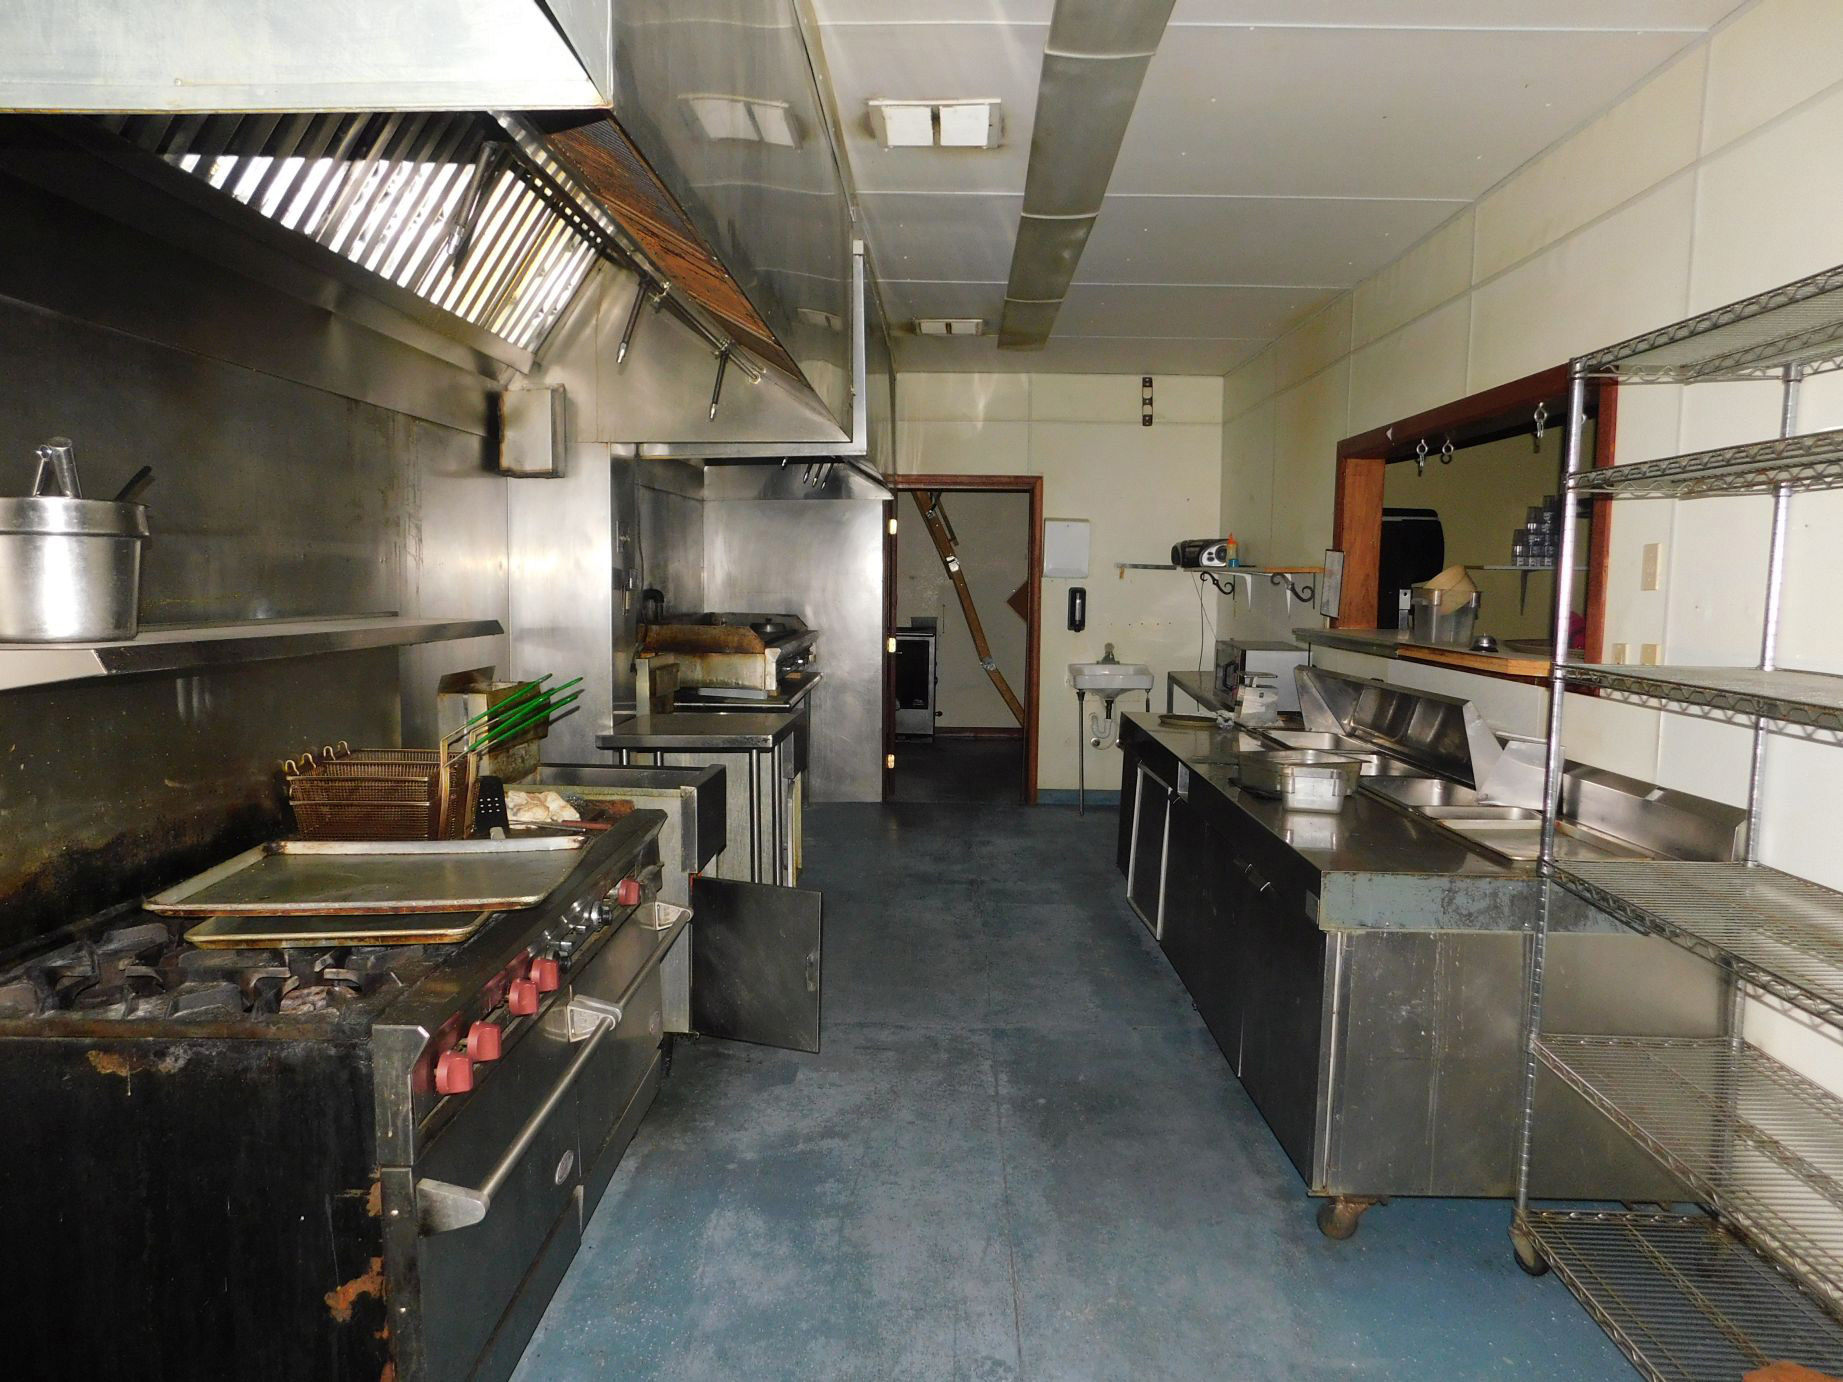 Parcel-3-kitchen-area-(3).jpg